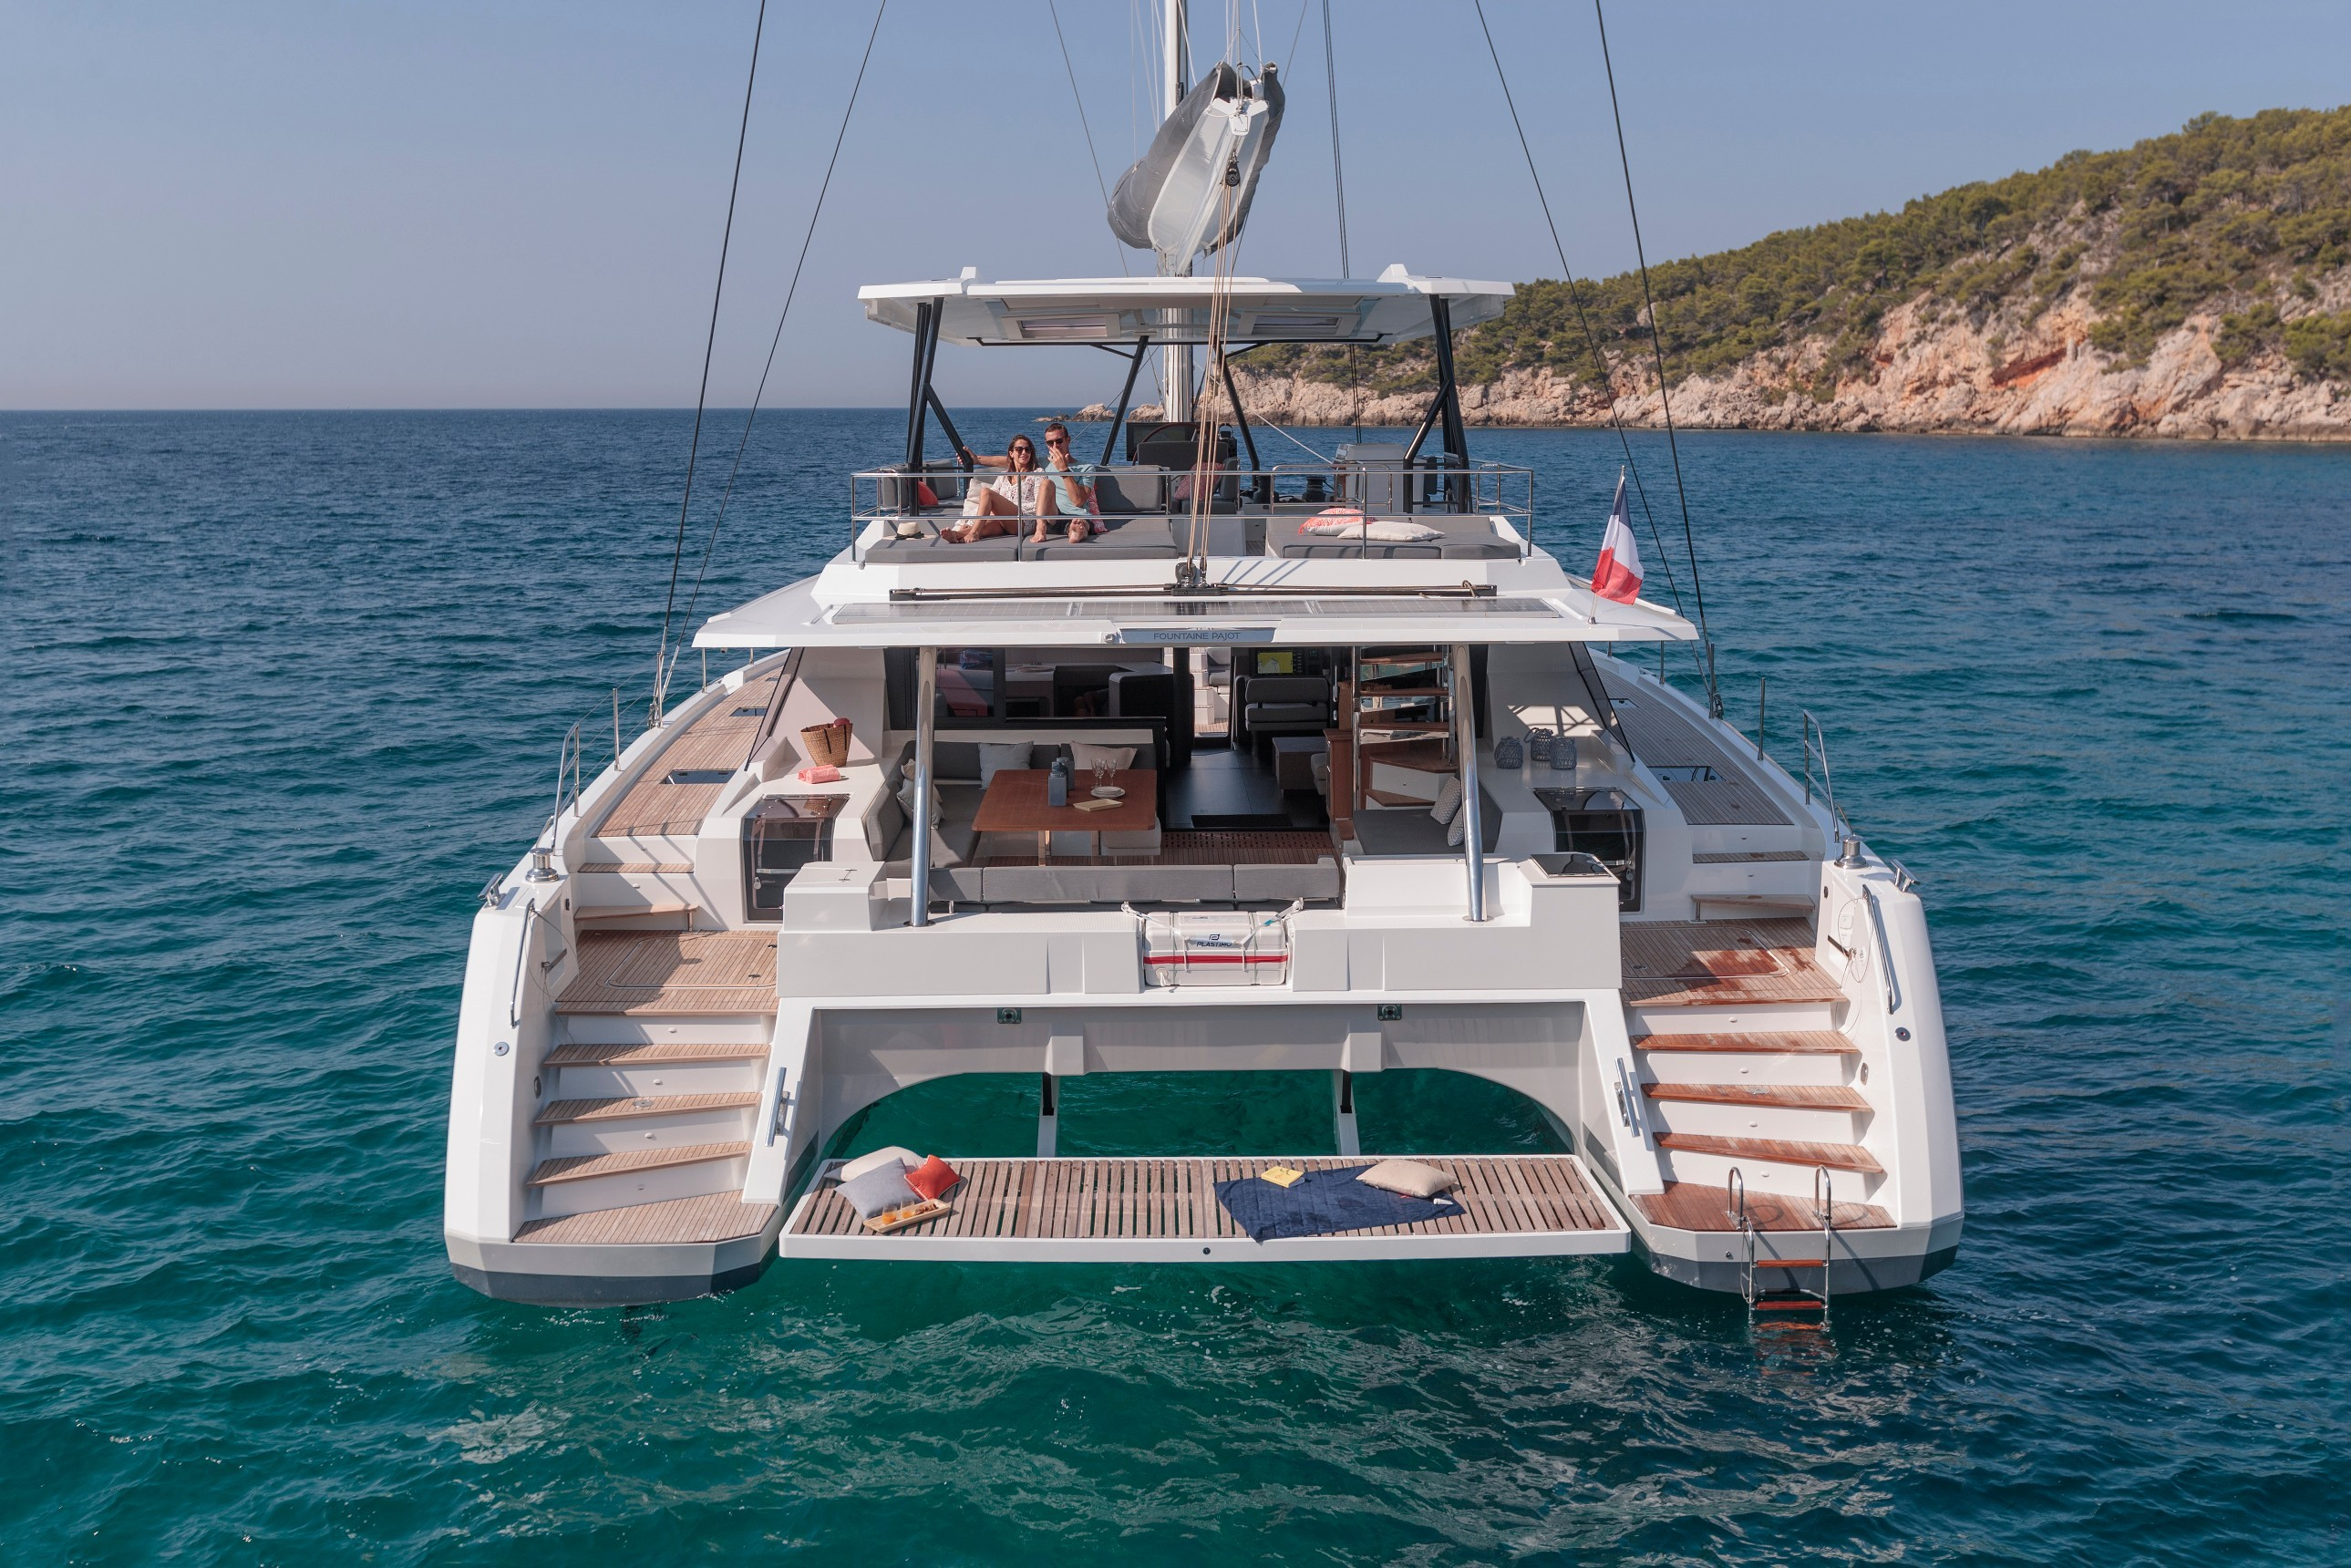 New Sail Catamaran for Sale 2021 Fountaine Pajot 59 Boat Highlights